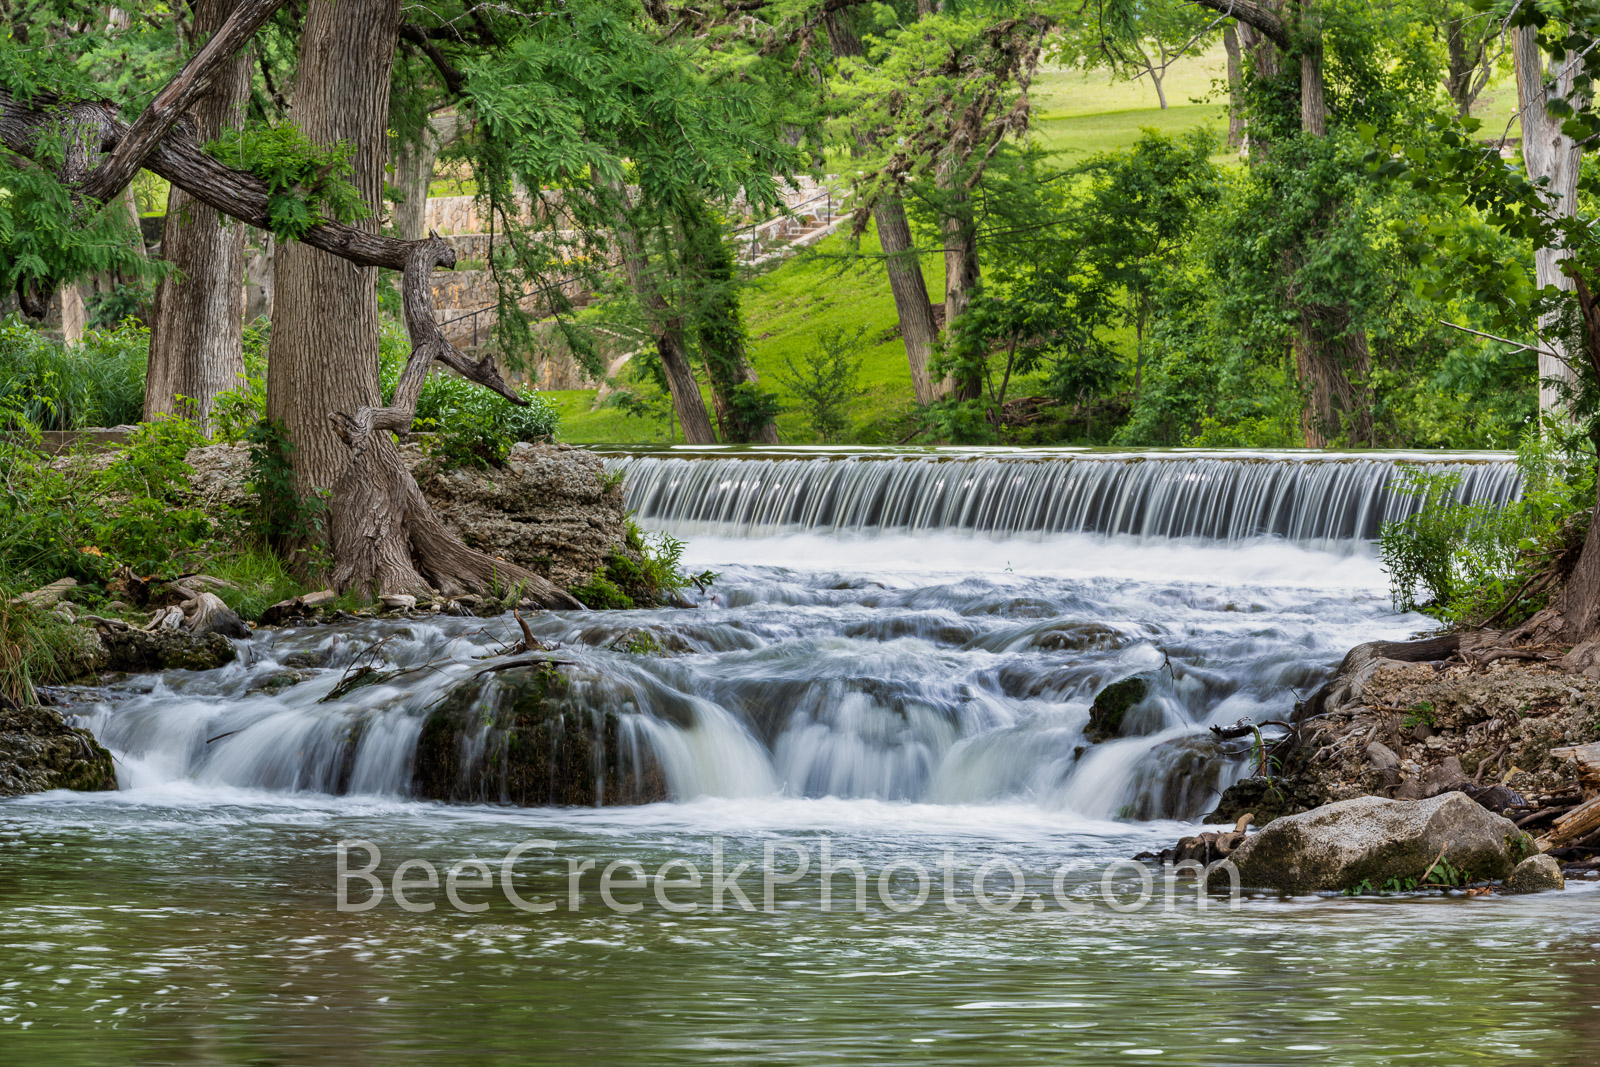 Waterfall Along the Guadalupe River - This is along the guadalupe river in the Texas hill country as the river twist and turn...